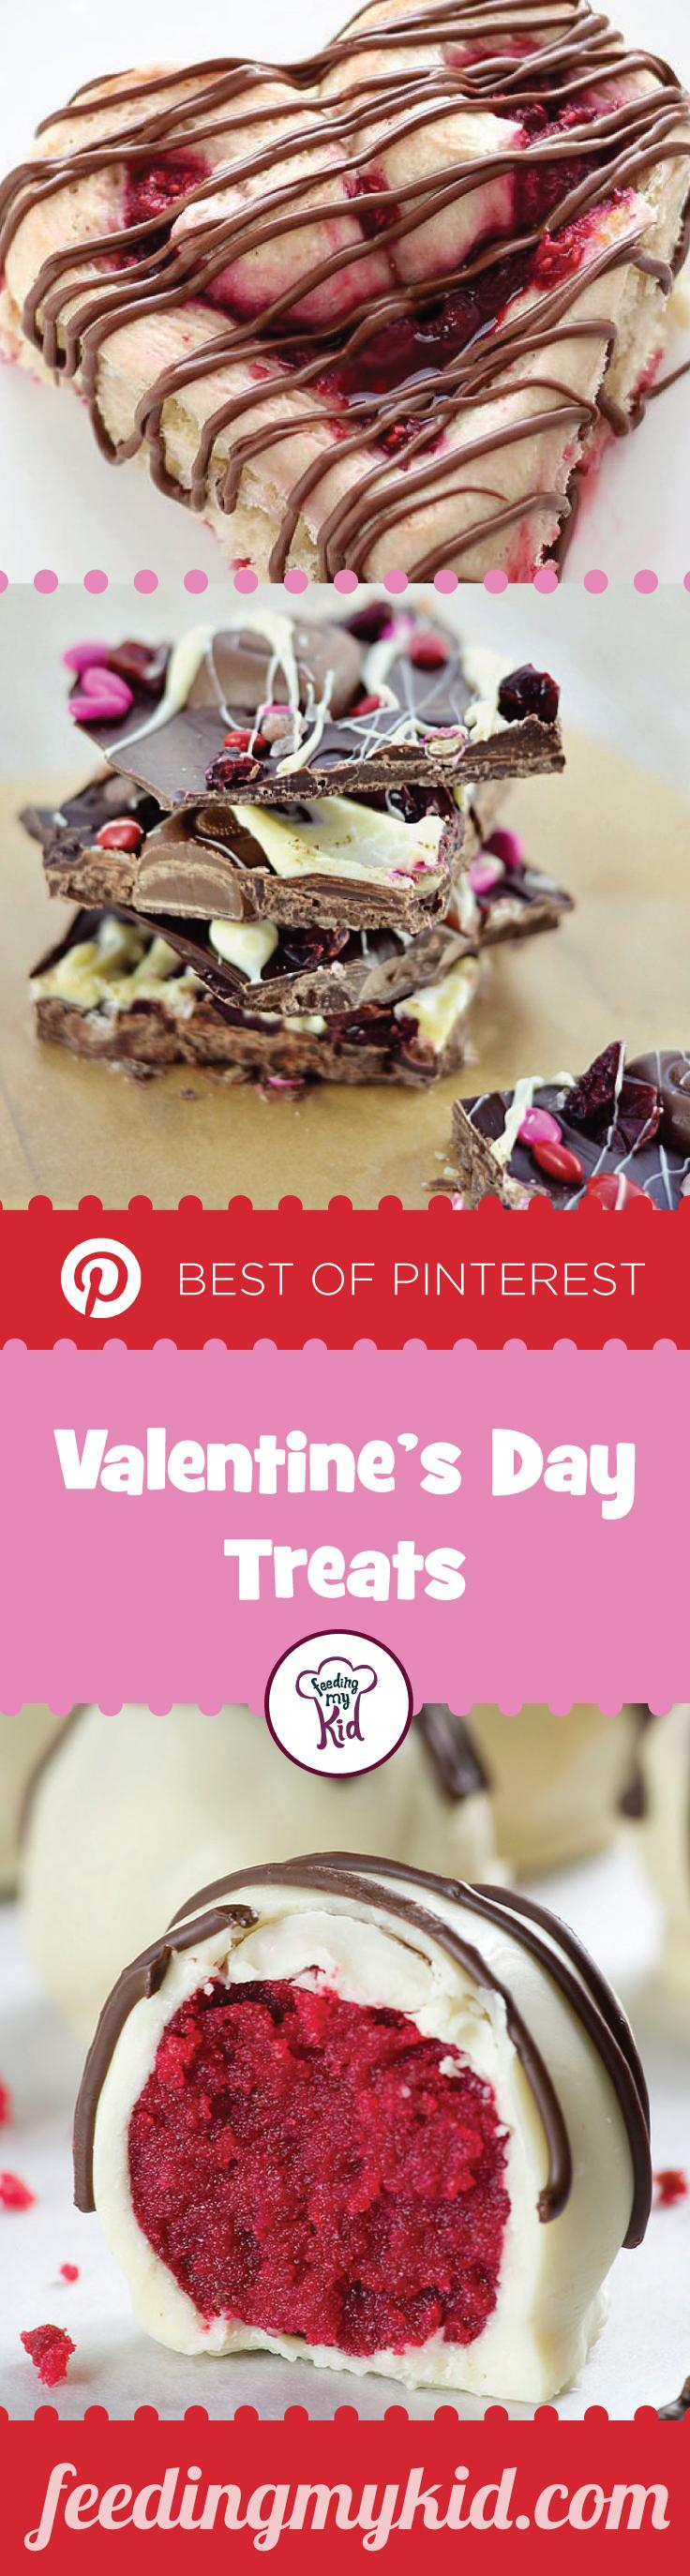 The Top Pinterest Valentine's Day Treats - We handcrafted and handpicked the top Pinterest Valentine's Day treats! They're perfect for that special someone or for that secret admirer. From Valentines Day Chocolate Dipped Wafer Cookies to Layered Strawberry Jello Cups; these treats are sure to please everyone!